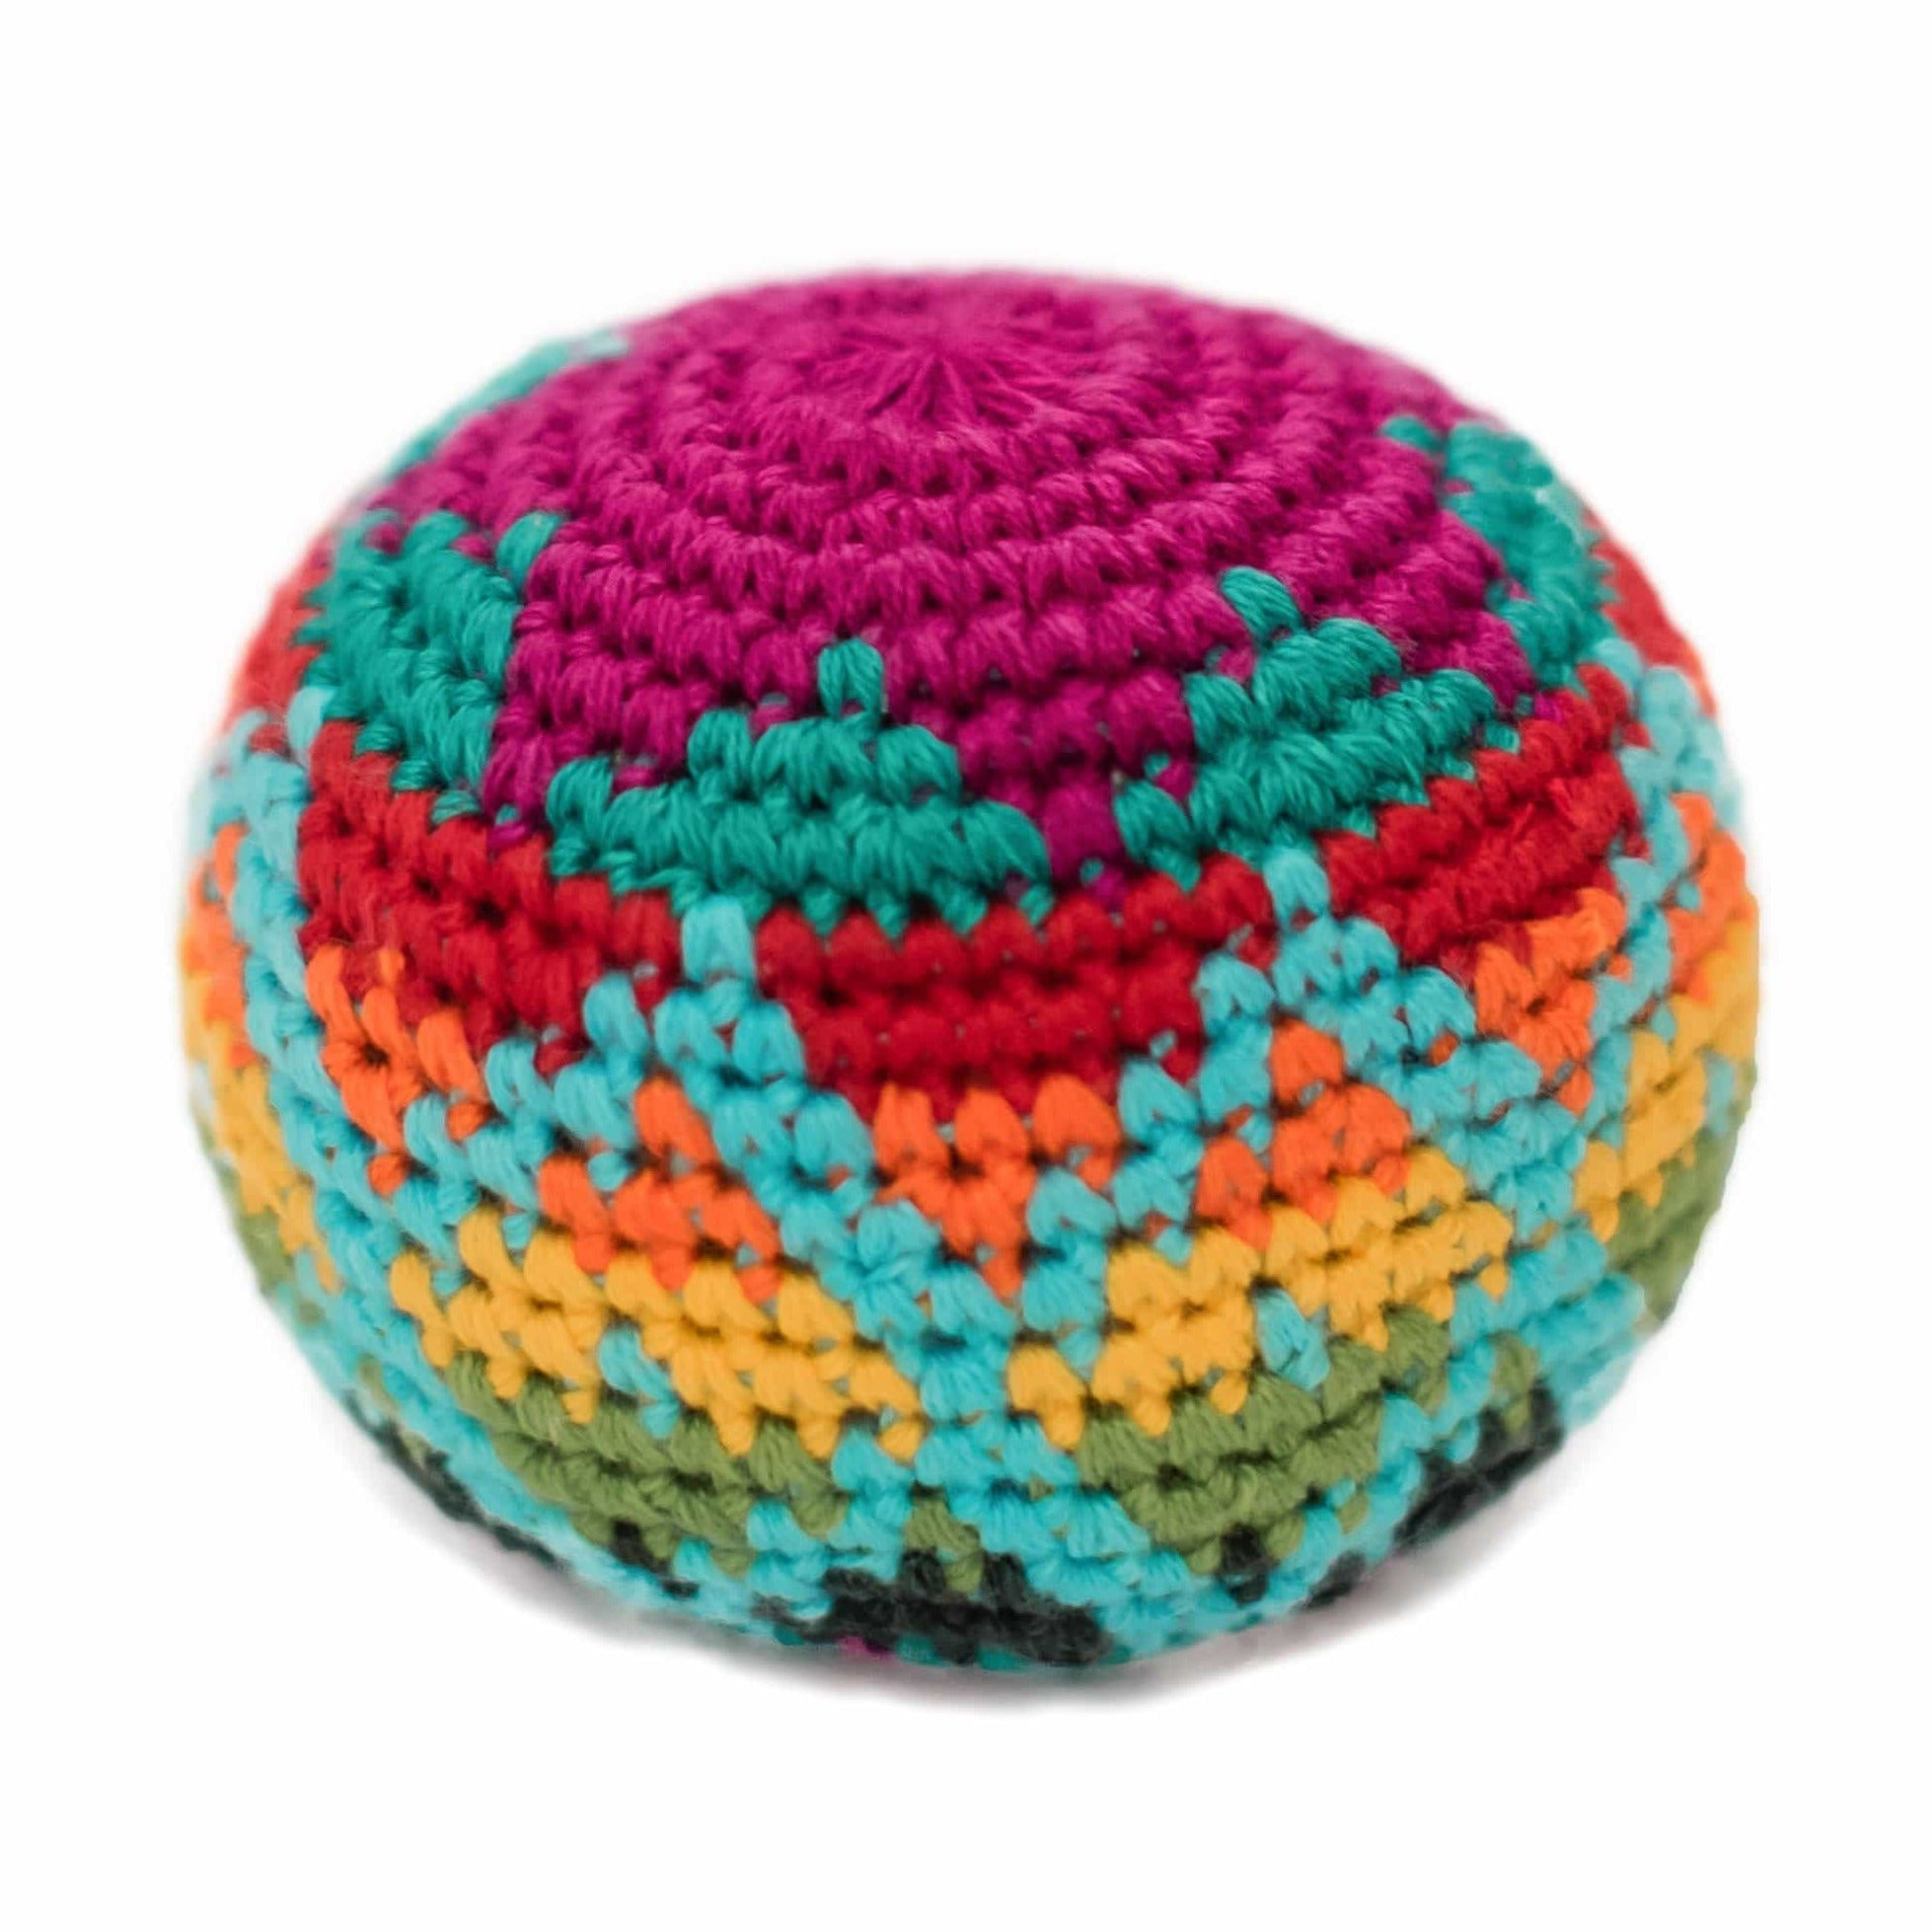 Fair Trade Colorful Hacky Sack